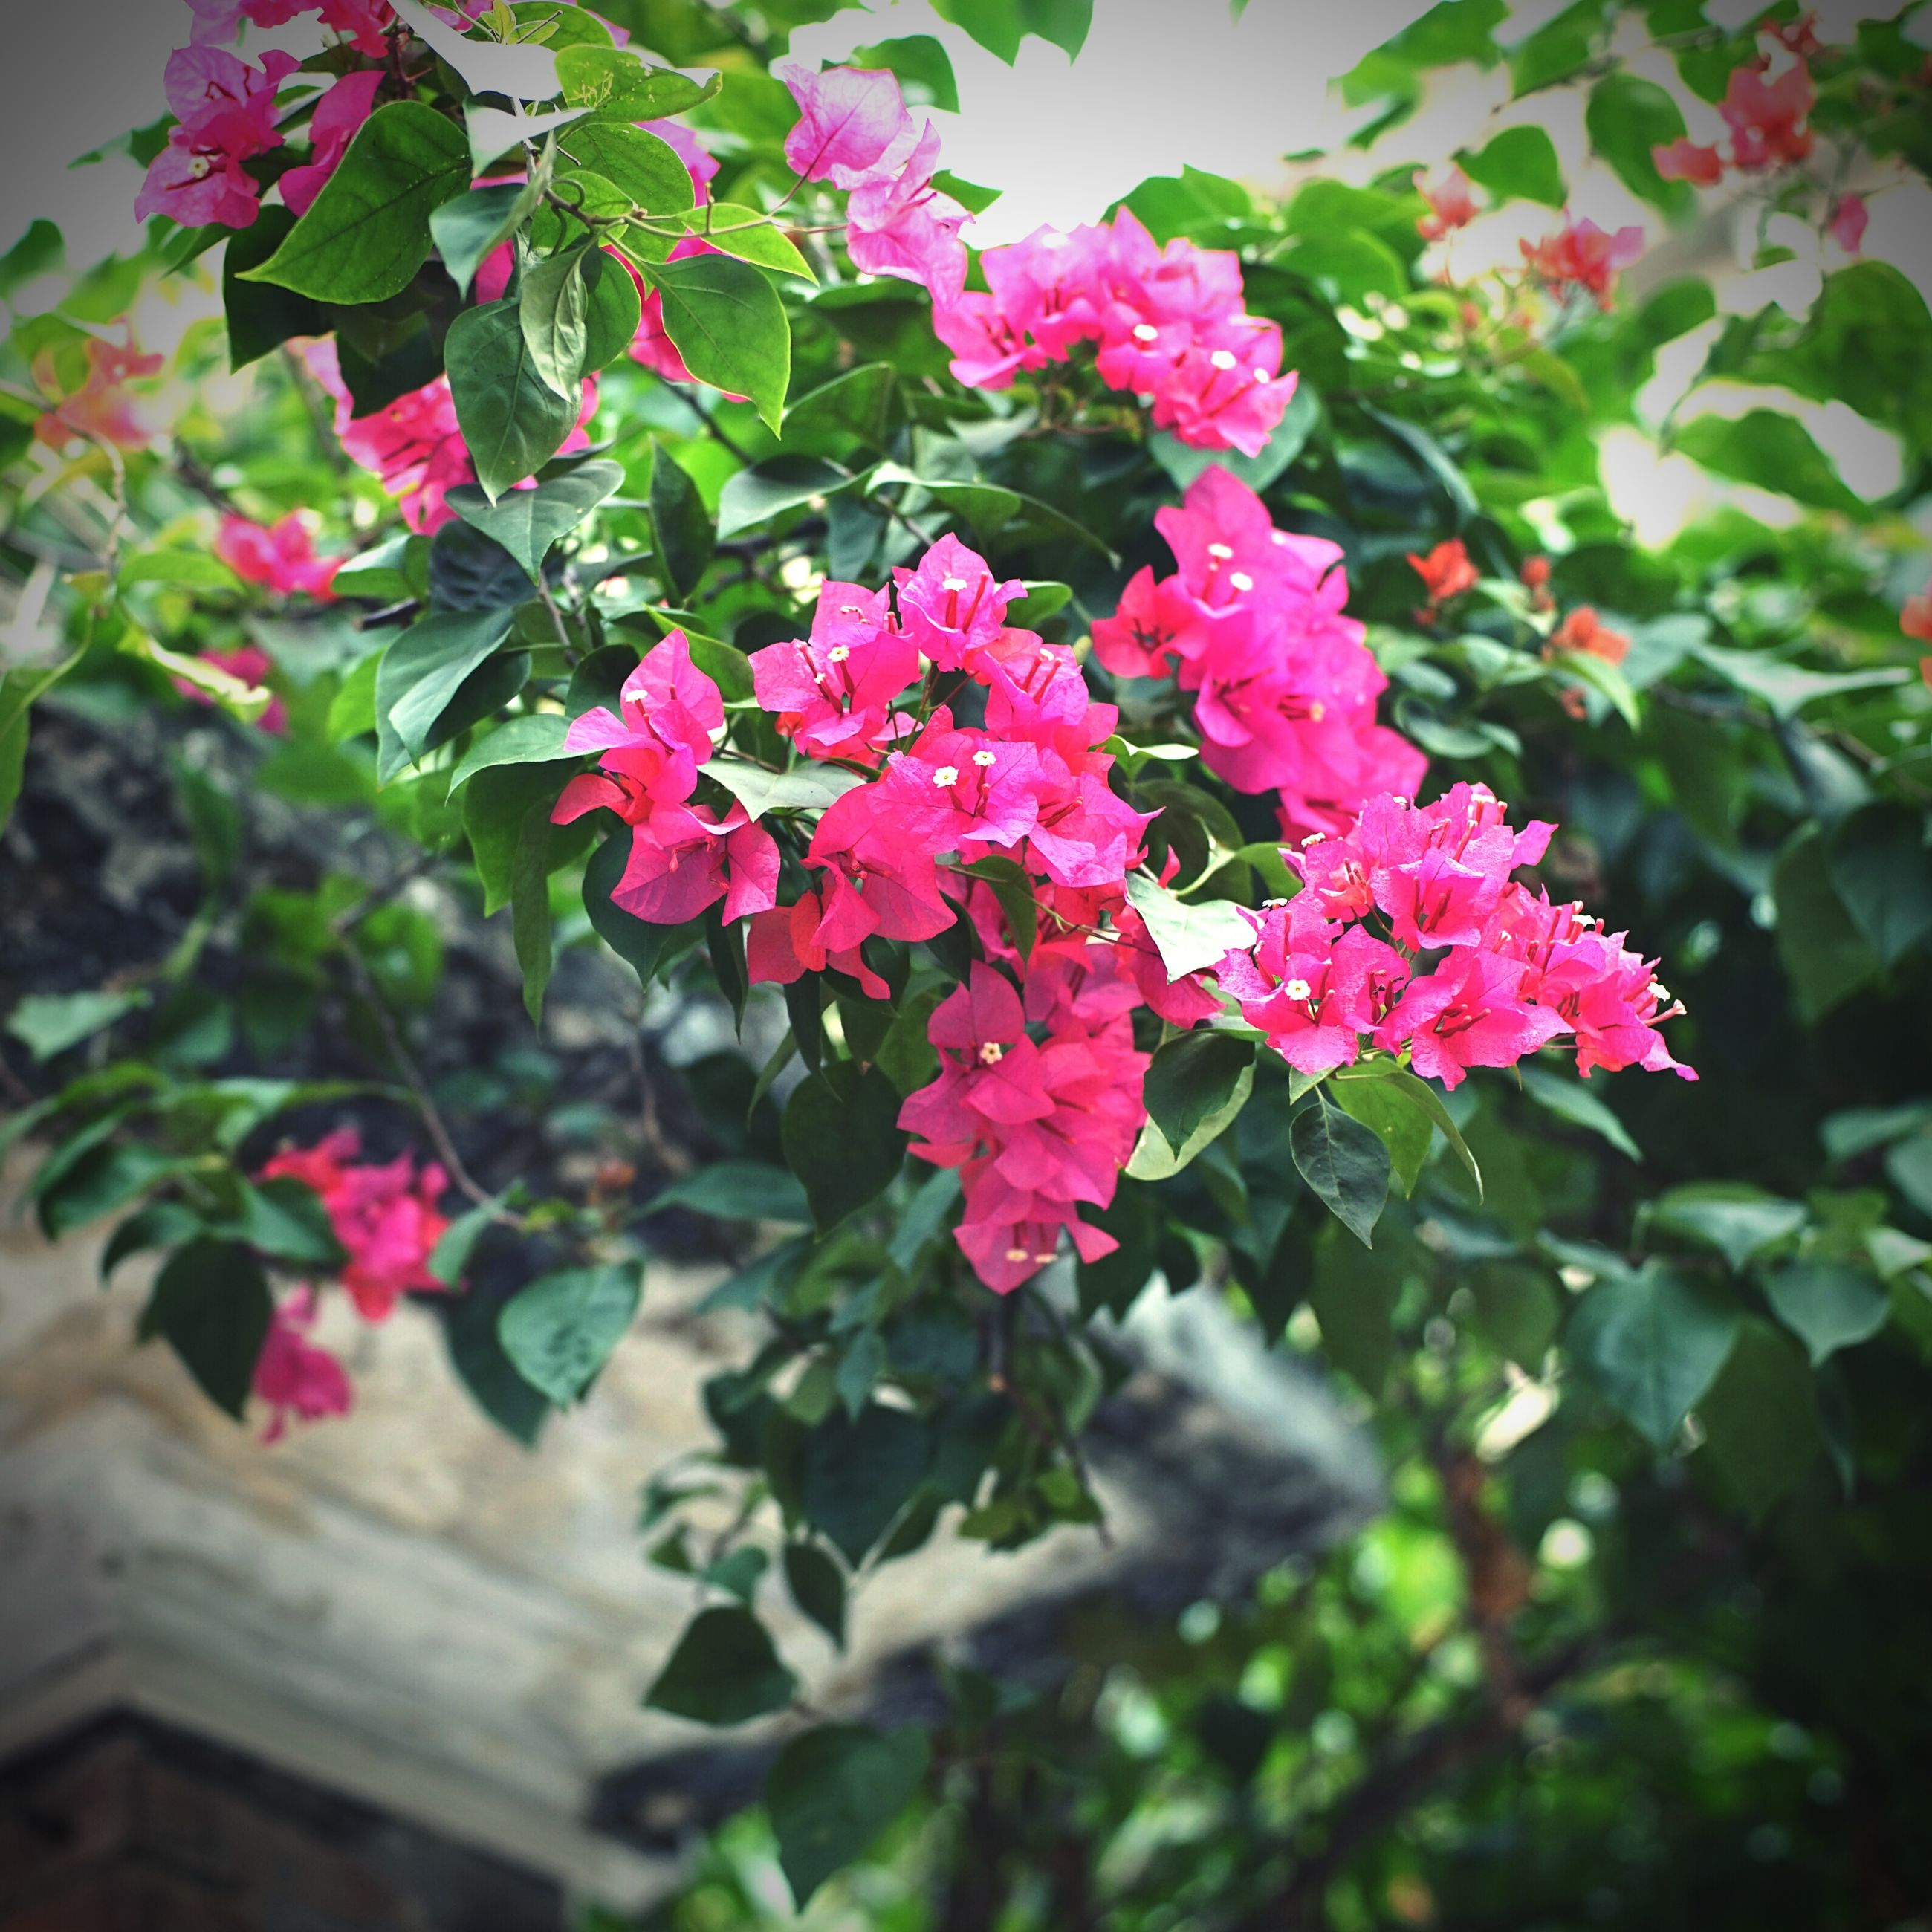 growth, flower, nature, pink color, plant, fragility, beauty in nature, green color, outdoors, freshness, no people, day, leaf, close-up, rhododendron, flower head